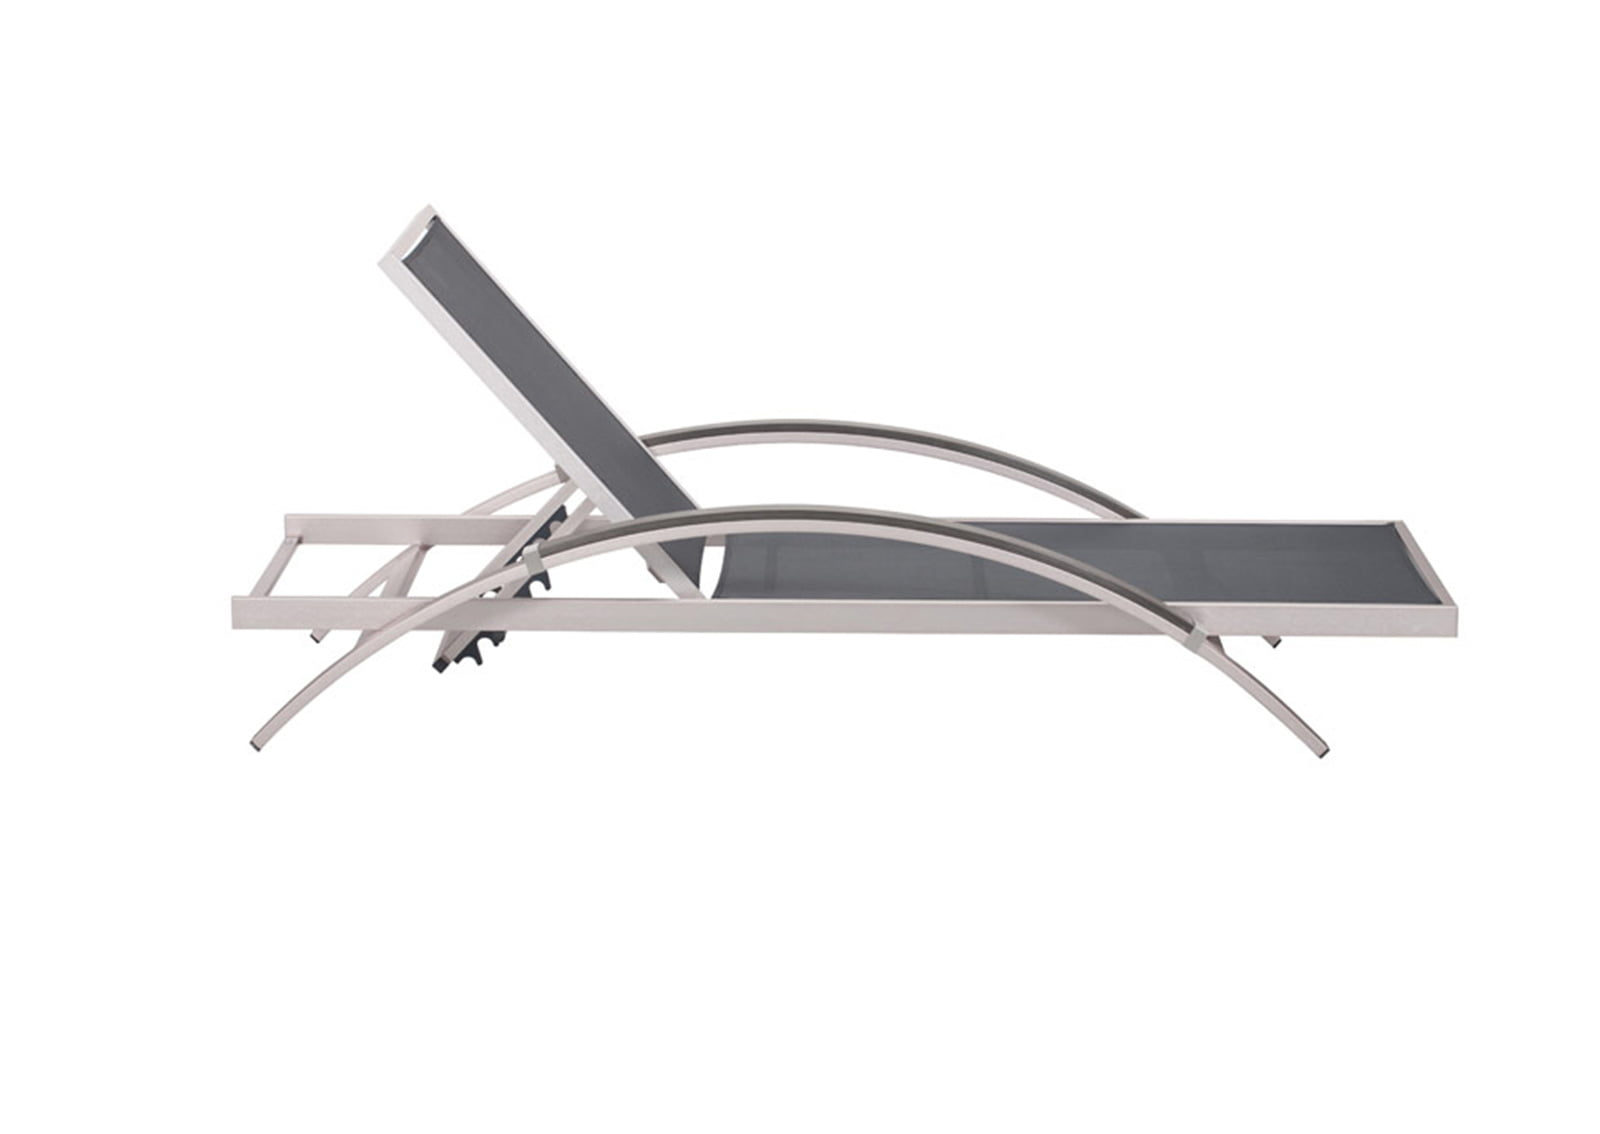 Metropolitan chaise lounge brushed aluminum furnishplus for Chaise lounge aluminum